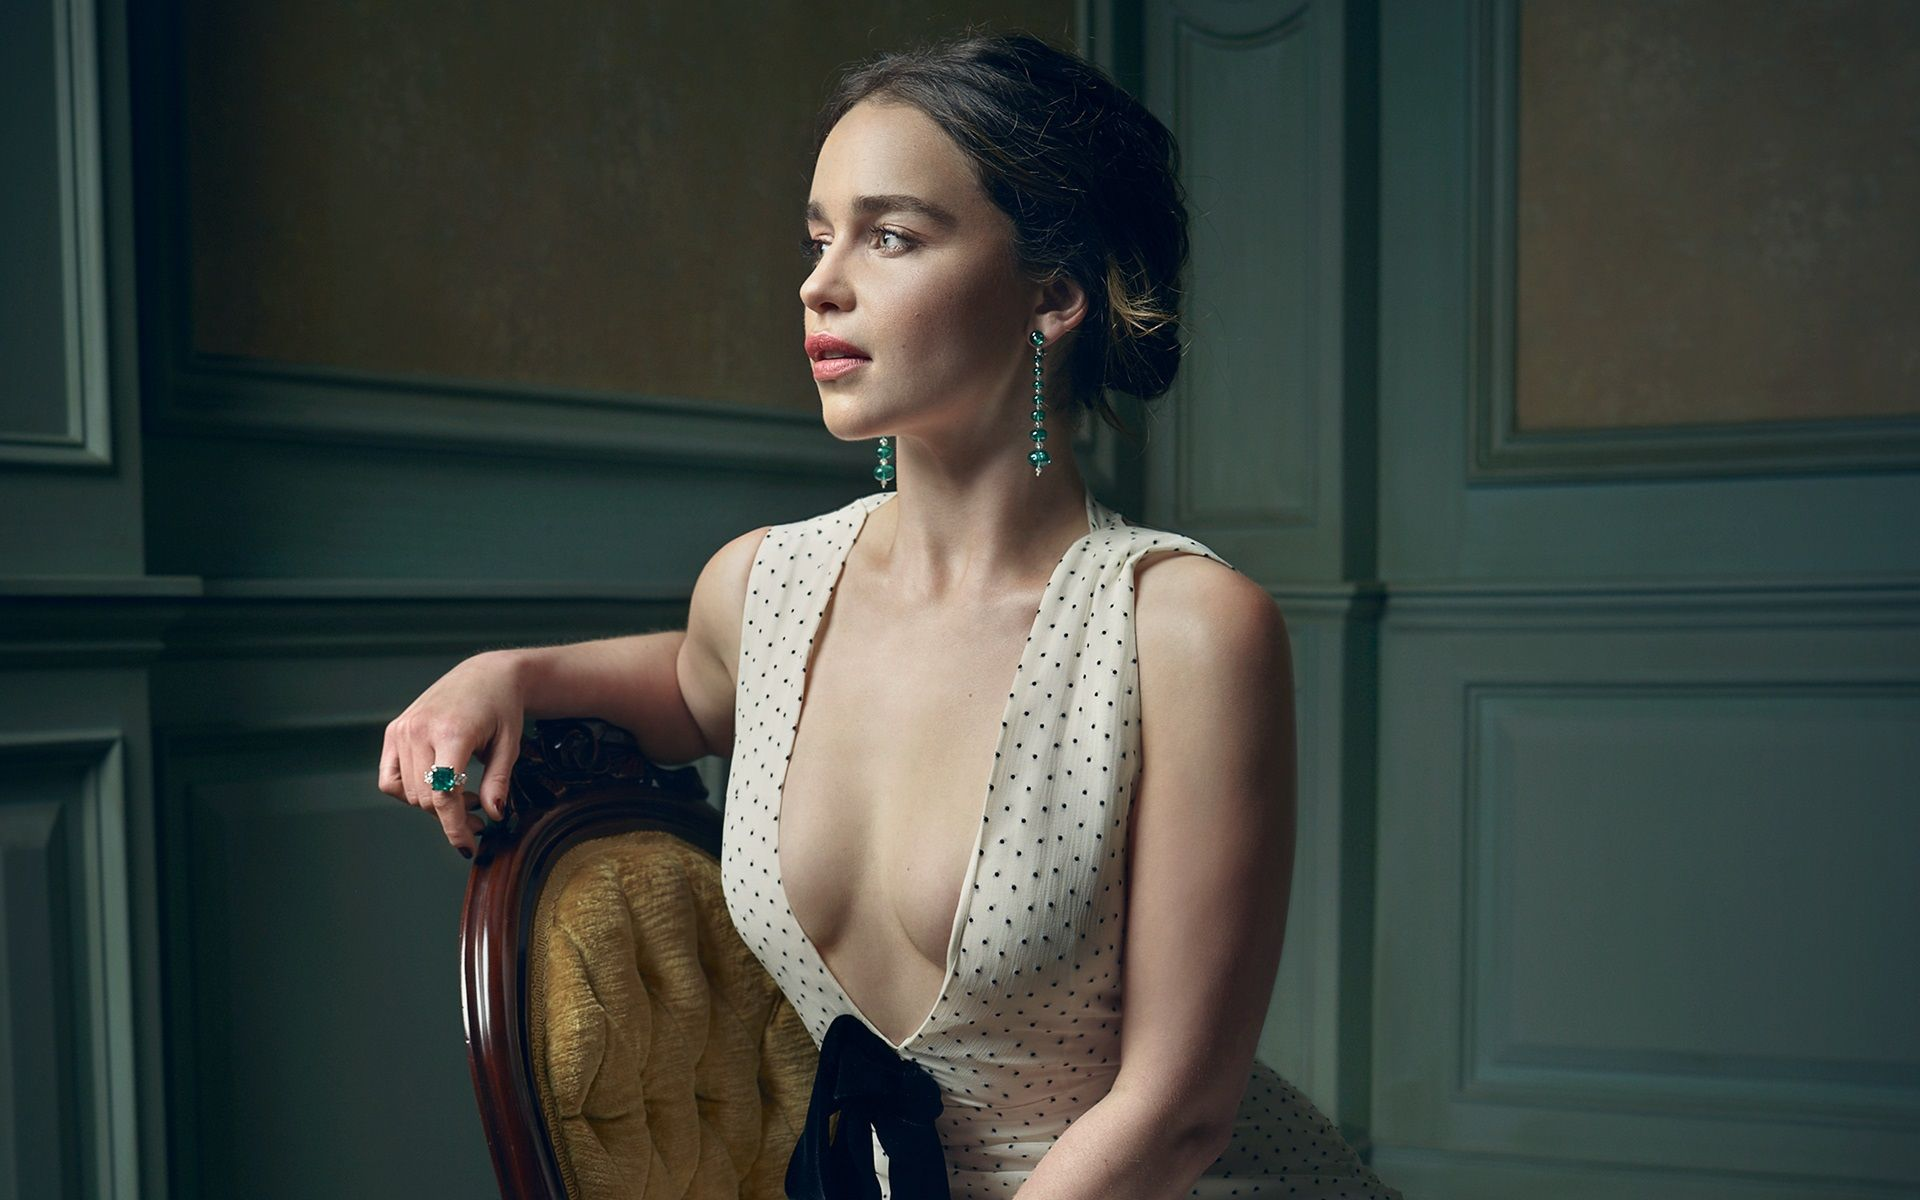 Cleavage Emilia Clarke nude (21 foto and video), Sexy, Fappening, Feet, braless 2019